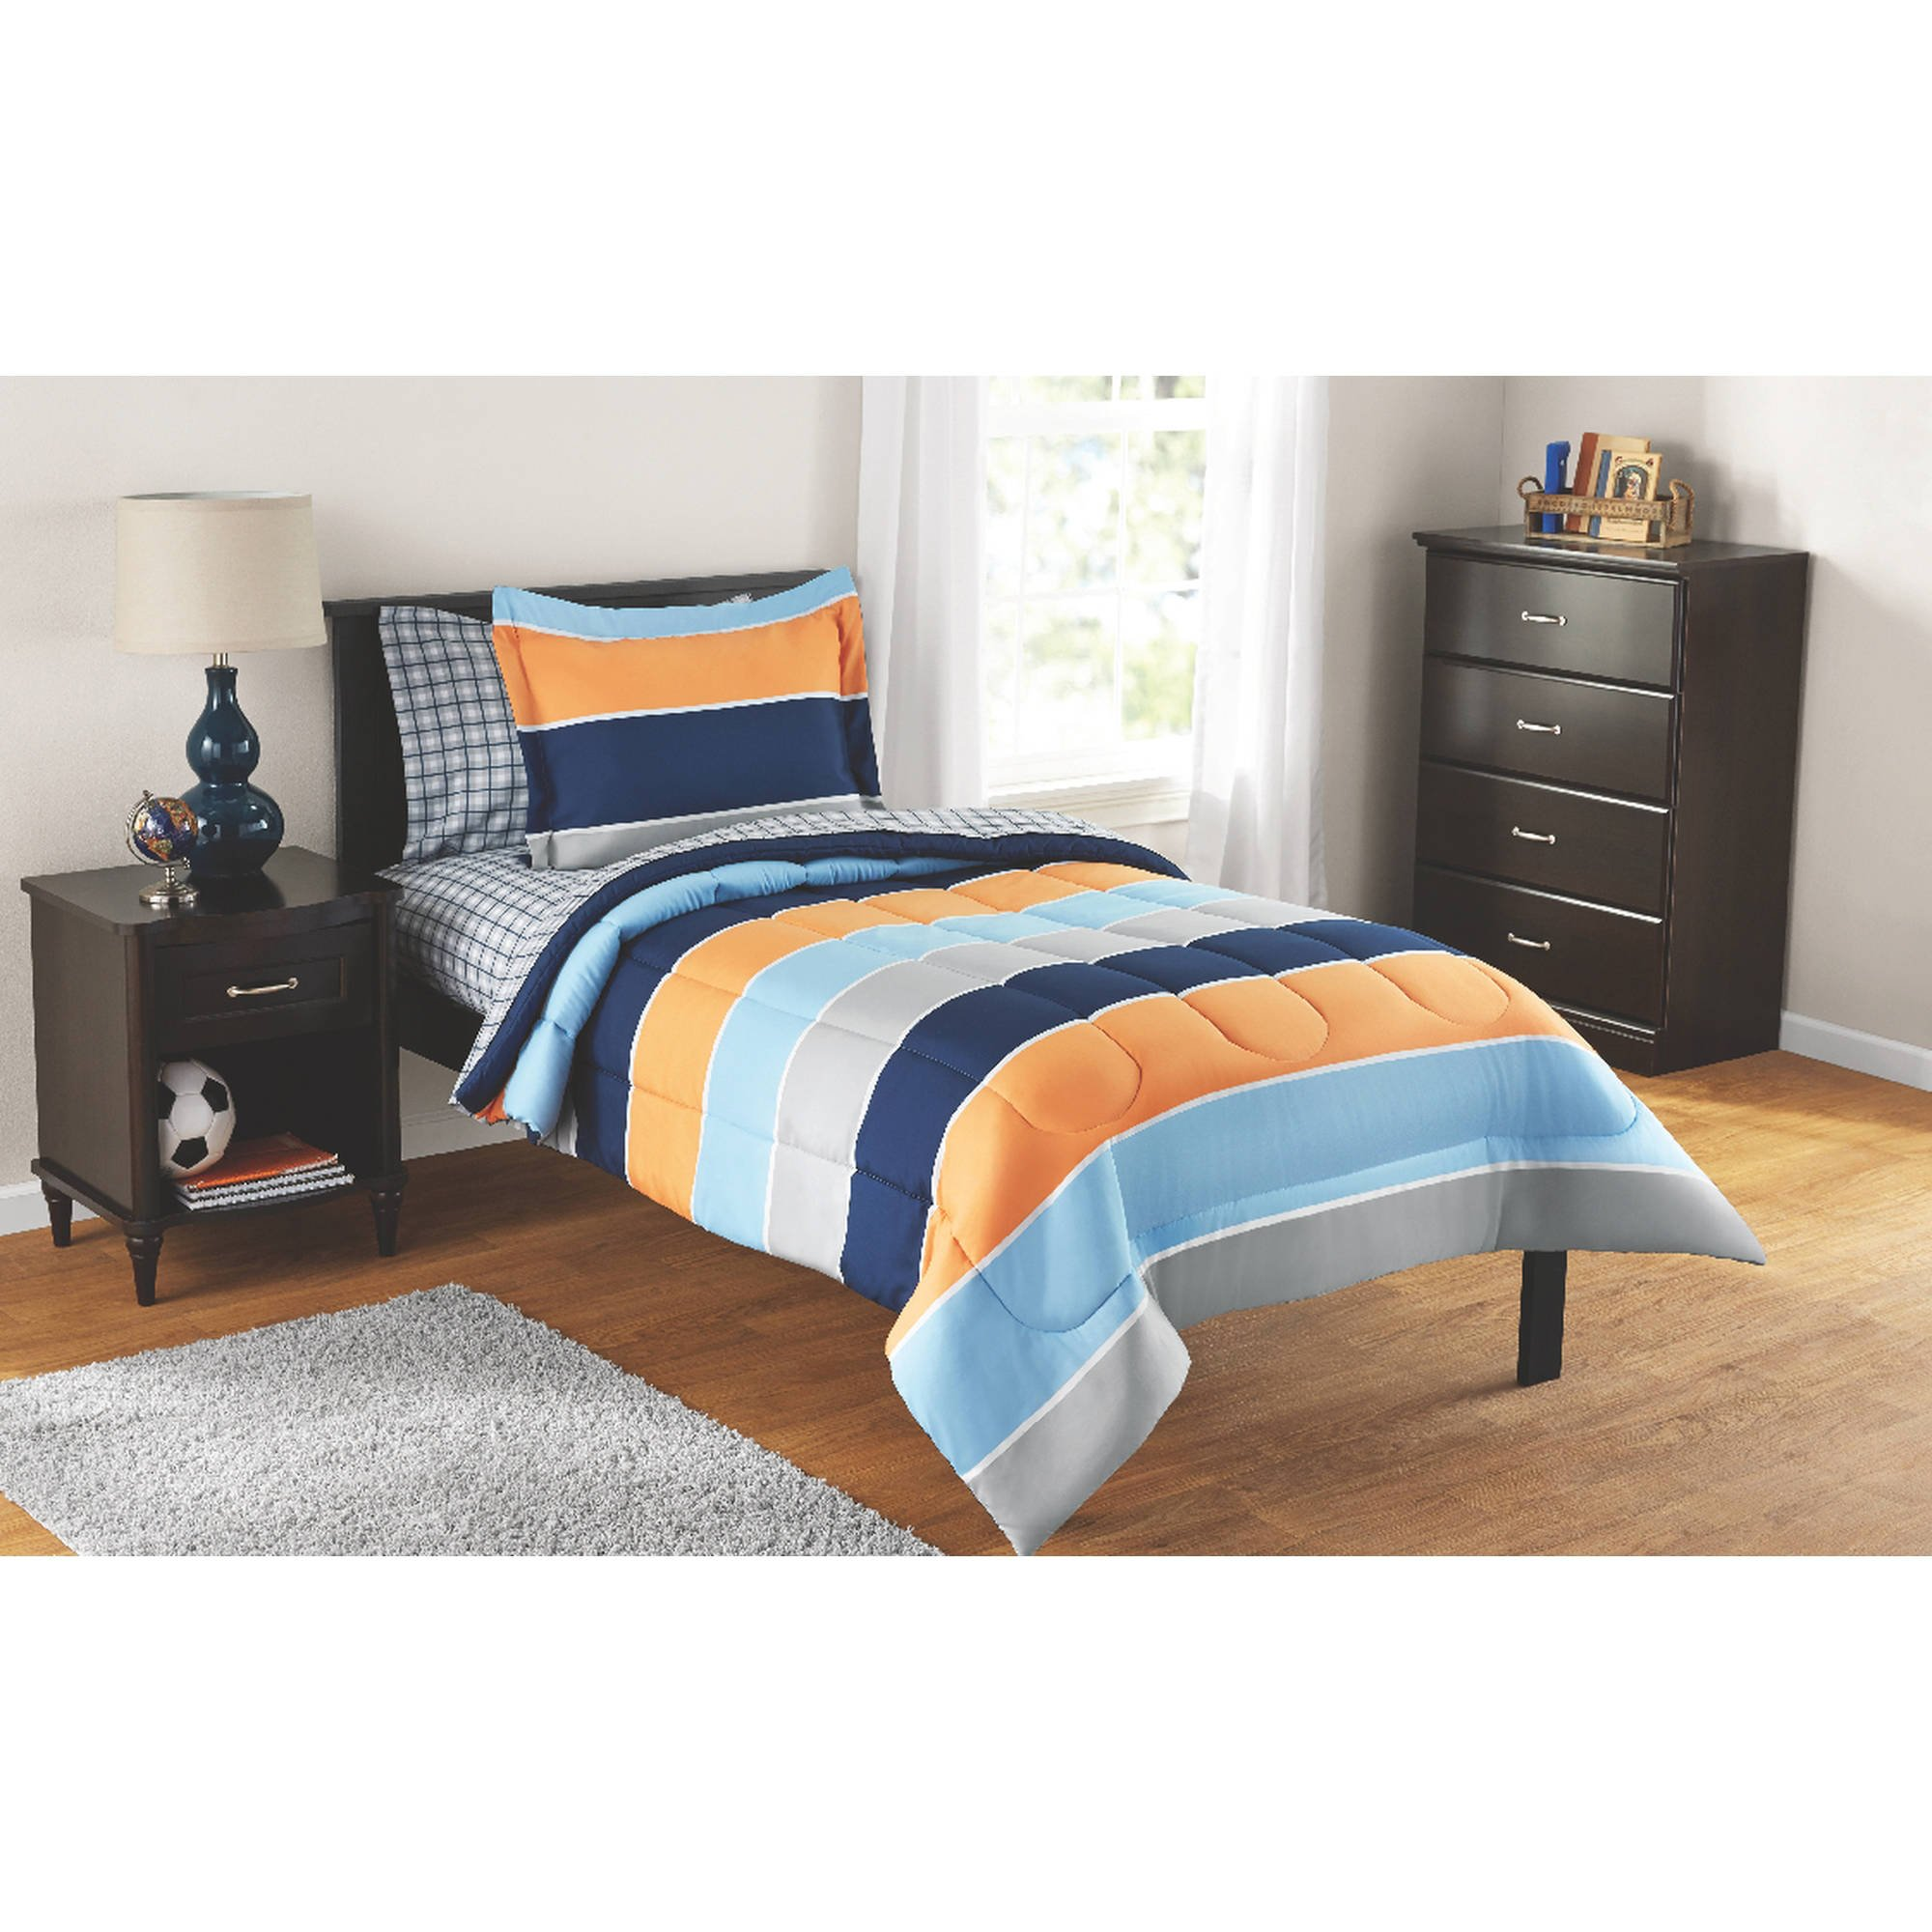 Mainstays Kids 5-Piece Bed in a Bag Coordinating Bedding Set, Twin (Blue, Orange and Gray Stripes)